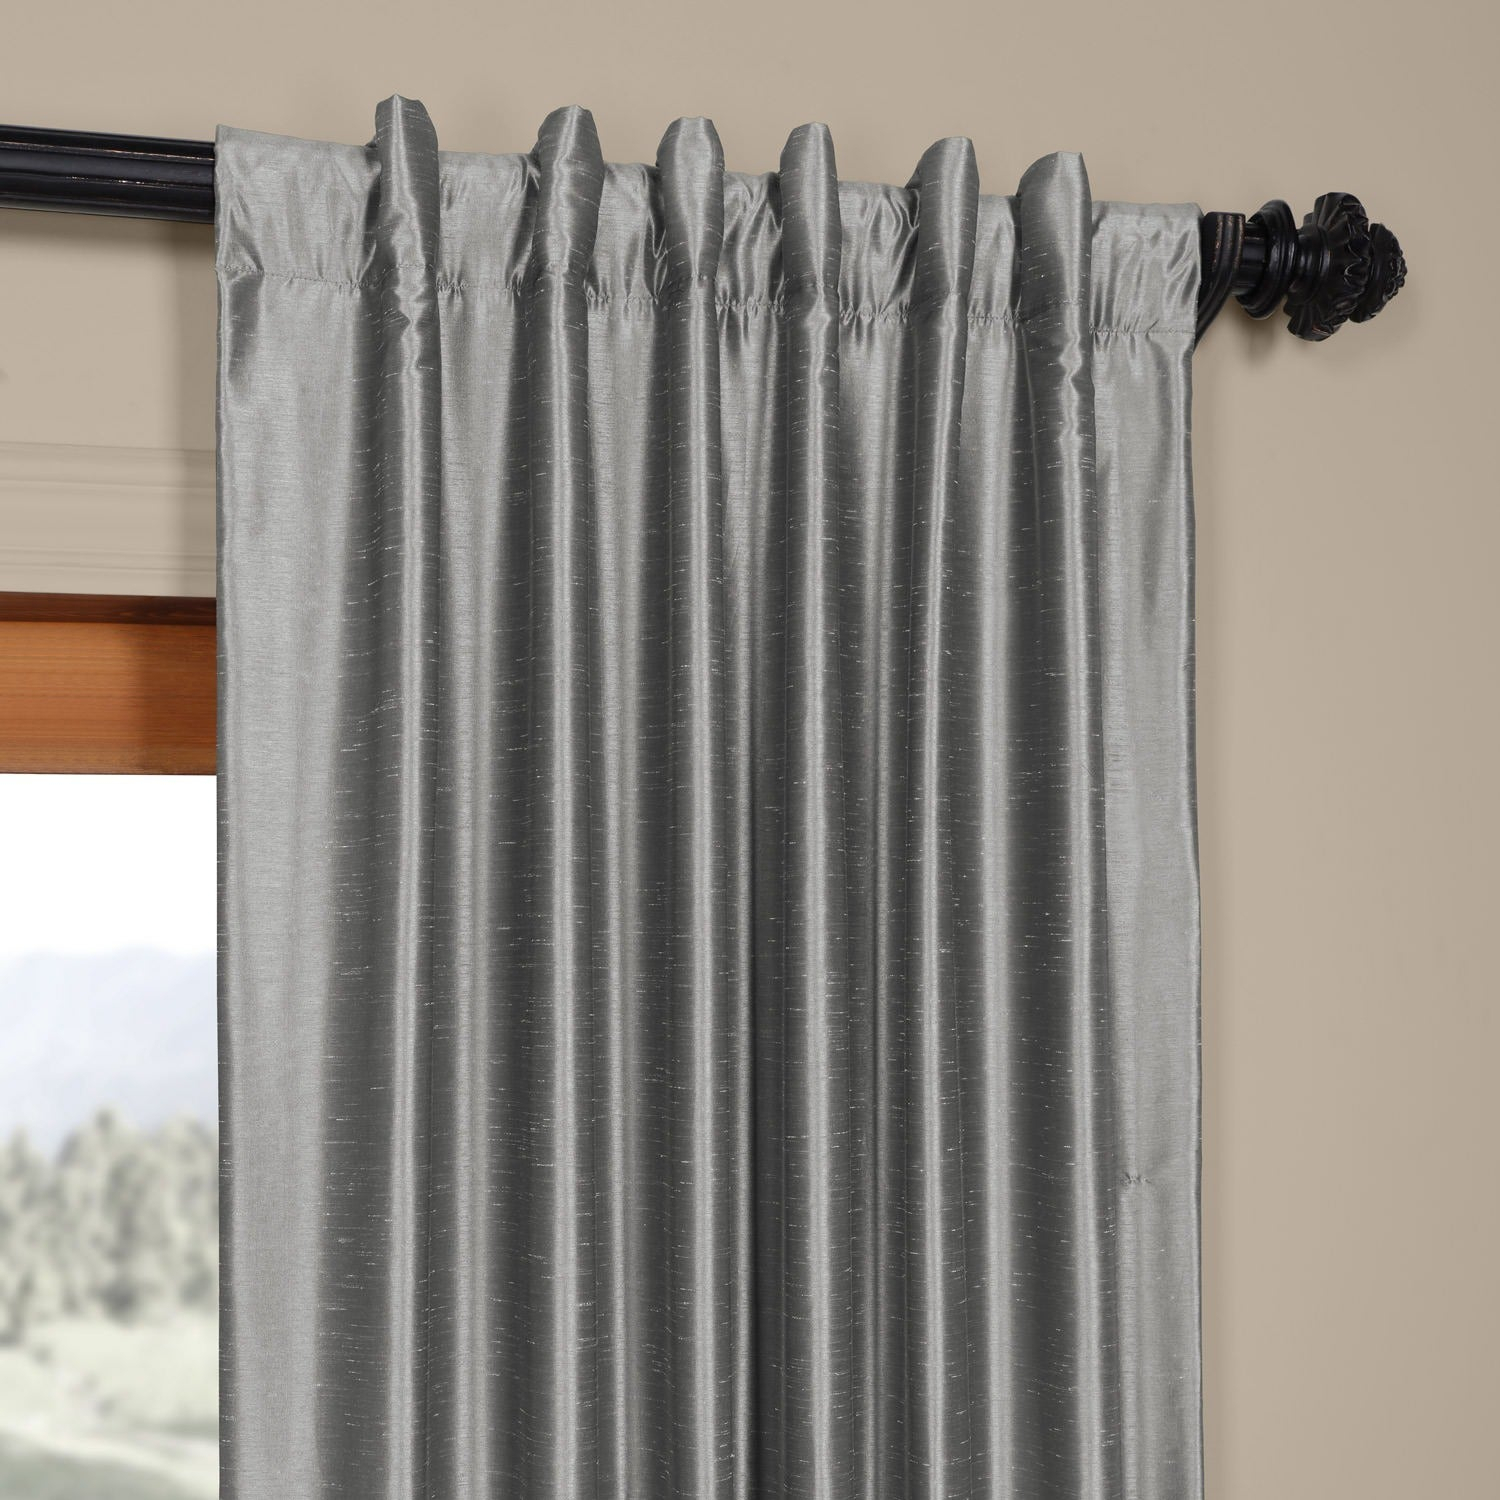 Exclusive Fabrics Storm Grey Vintage Faux Textured Dupioni Single Silk Curtain Panel Inside Storm Grey Vintage Faux Textured Dupioni Single Silk Curtain Panels (View 14 of 30)